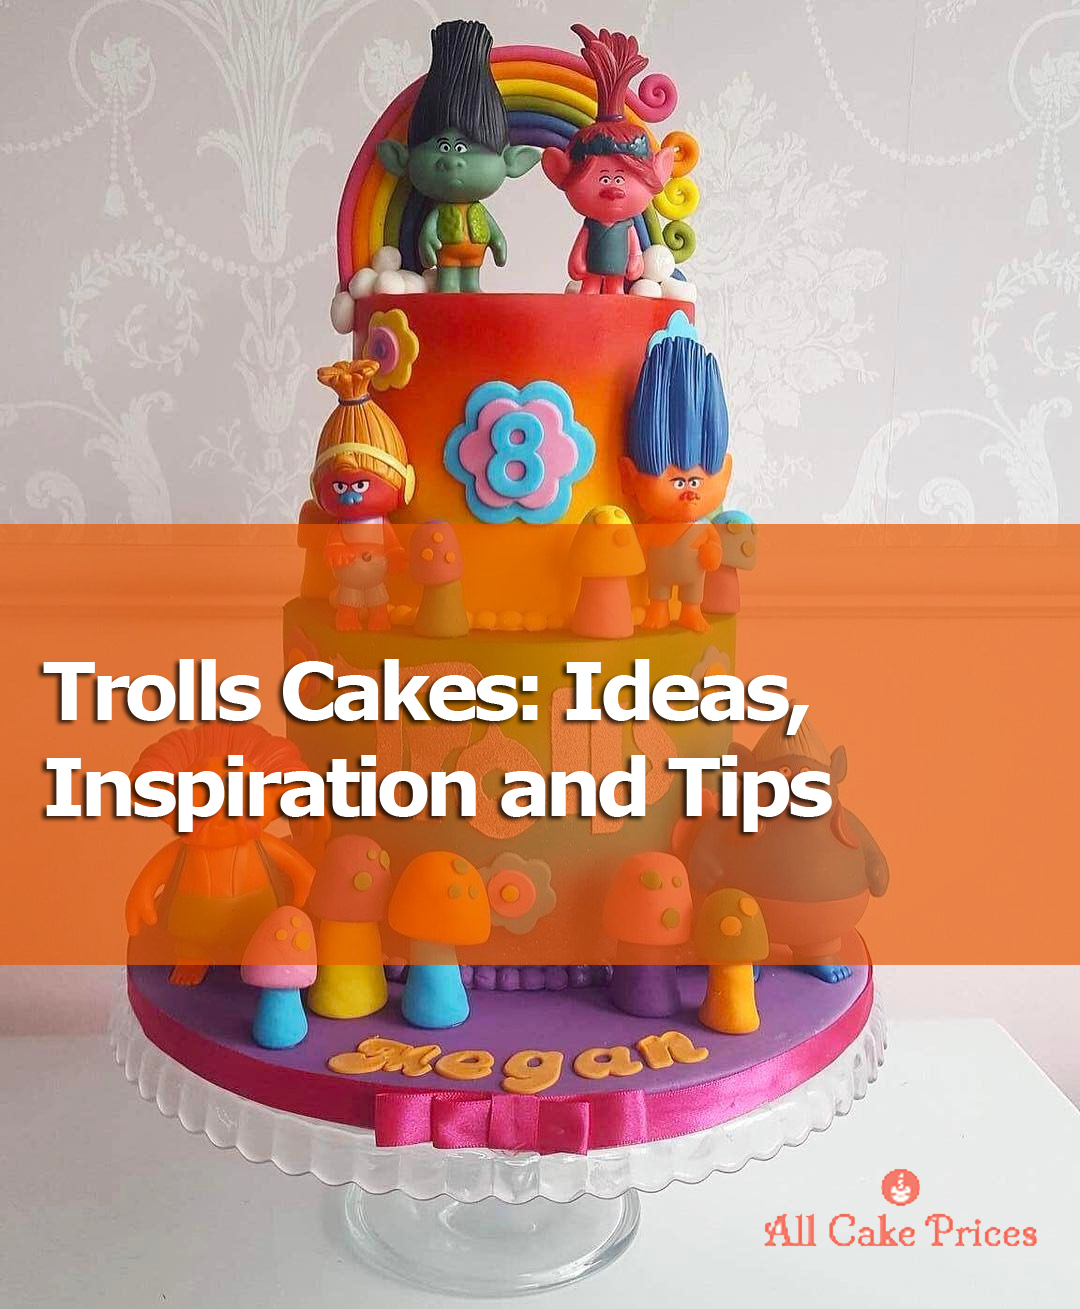 Astounding How To Make A Trolls Cake Ideas Inspiration And Tips For Busy Personalised Birthday Cards Paralily Jamesorg